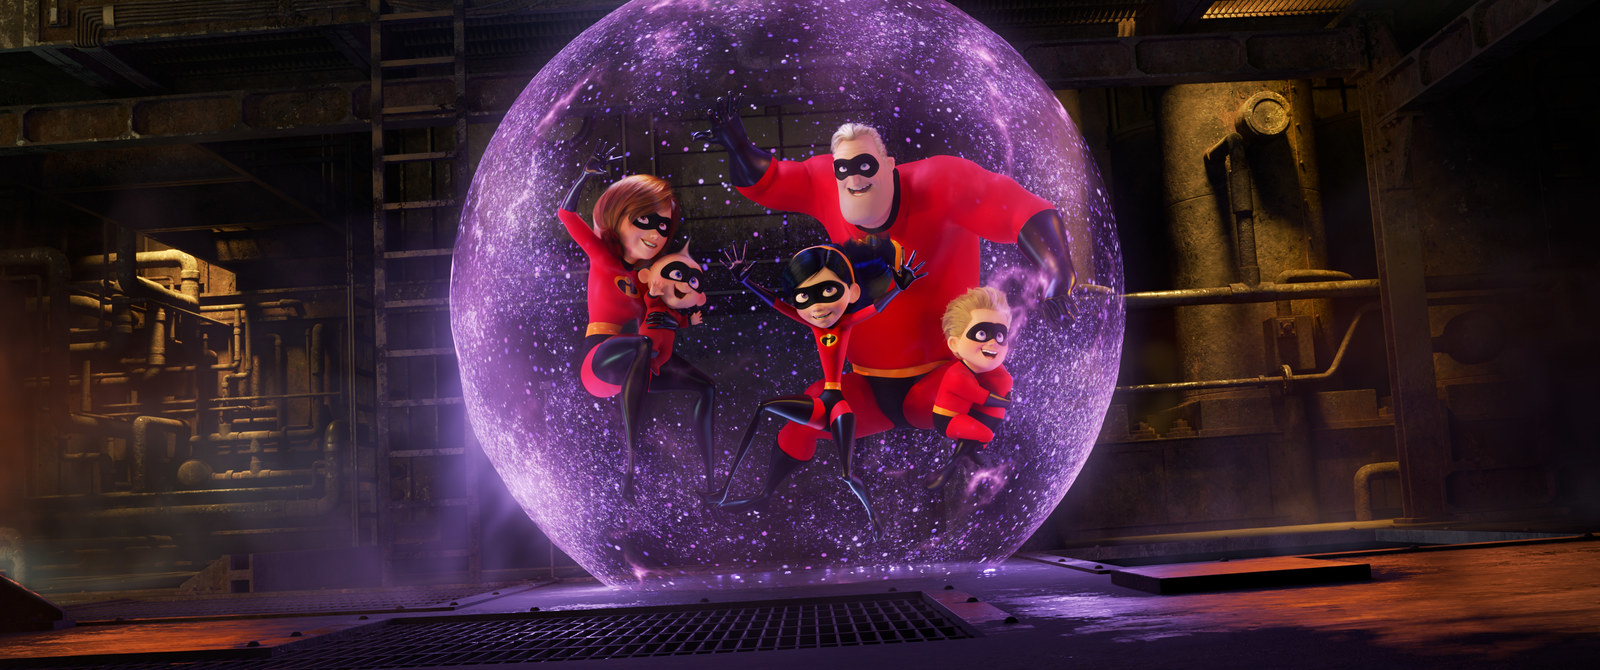 48 Incredible Facts About Incredibles 2 You Probably Don T Know